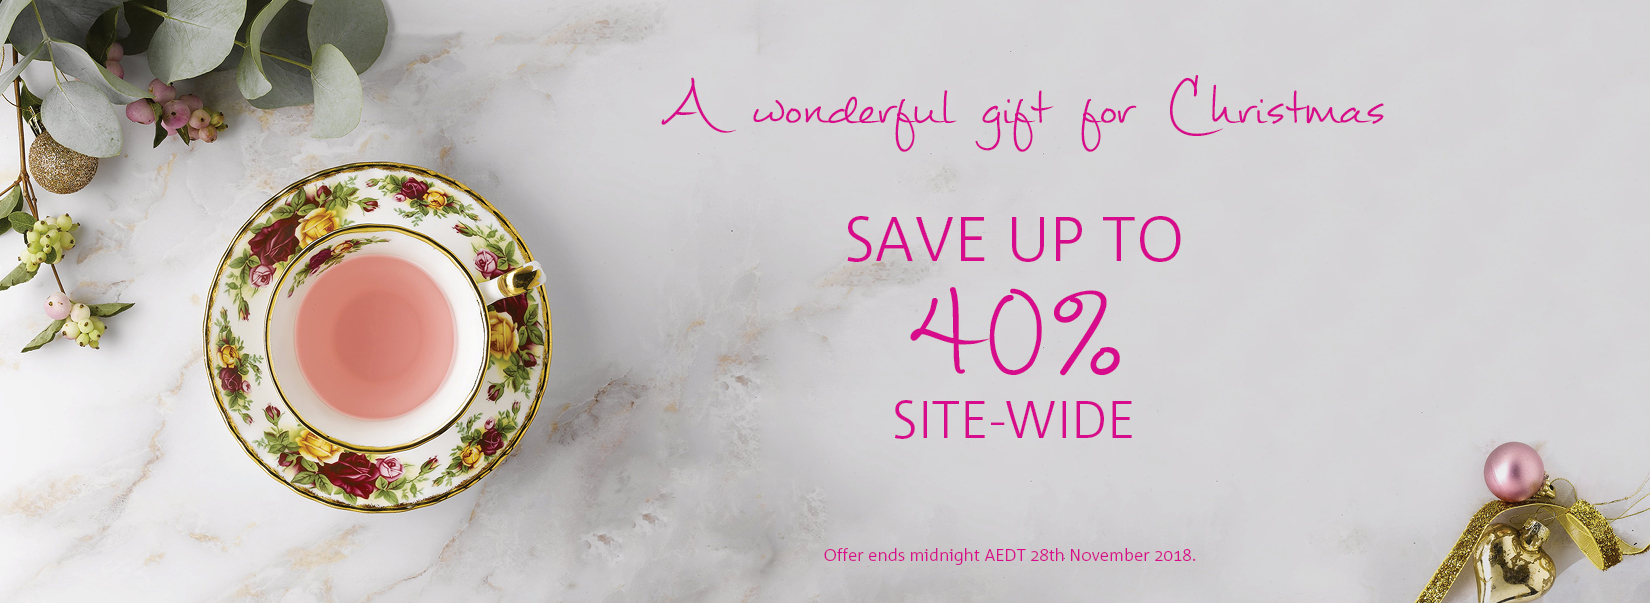 xmas sale up to 40 off sitewide - nov18